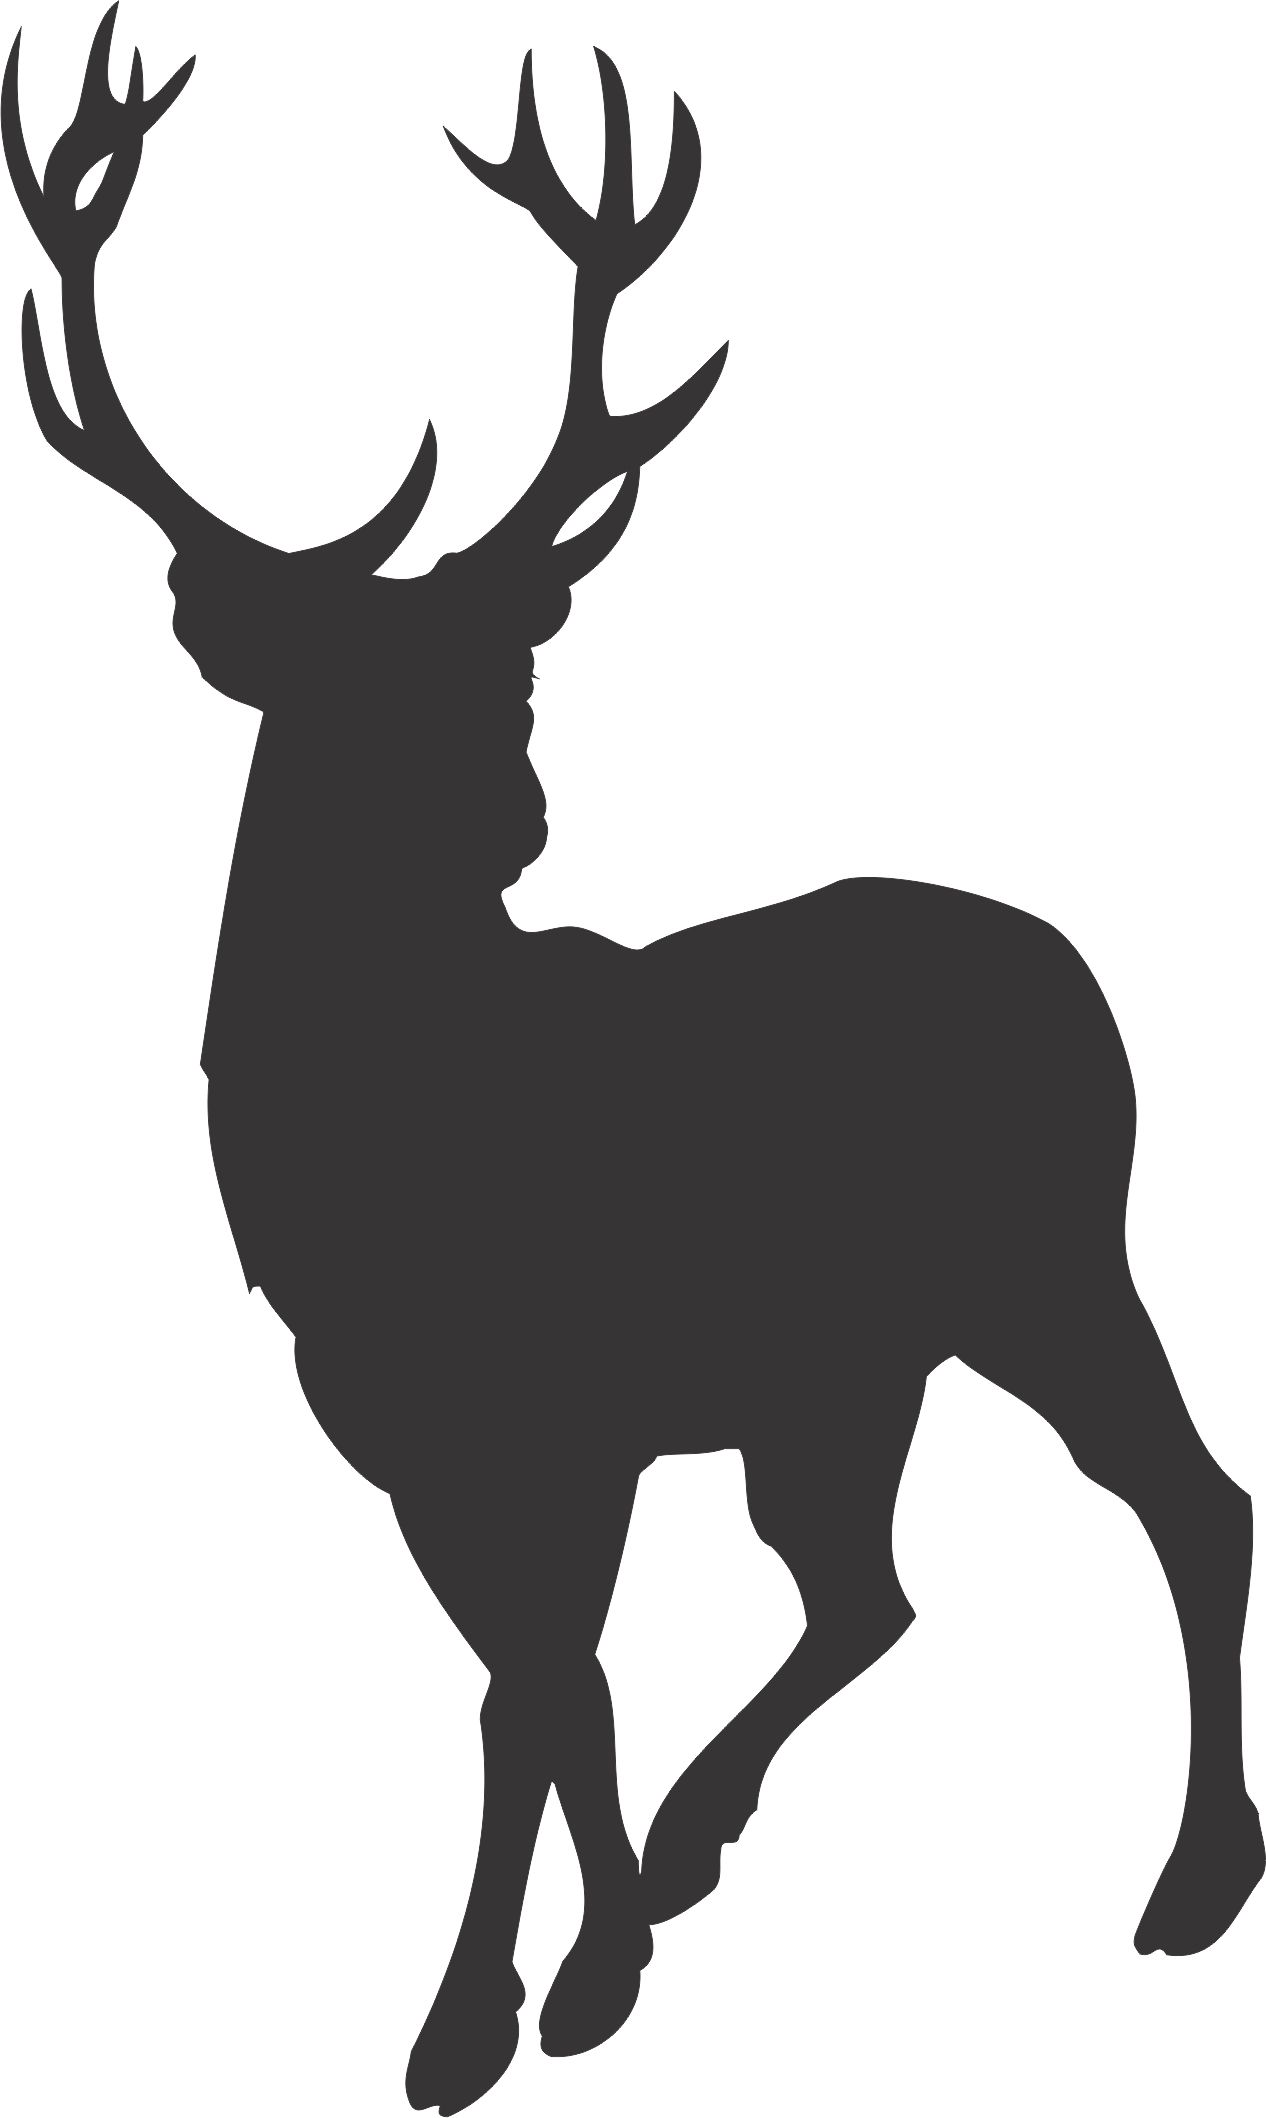 White stag clipart clip art library download Free download Stag Silhouette Clipart for your creation ... clip art library download